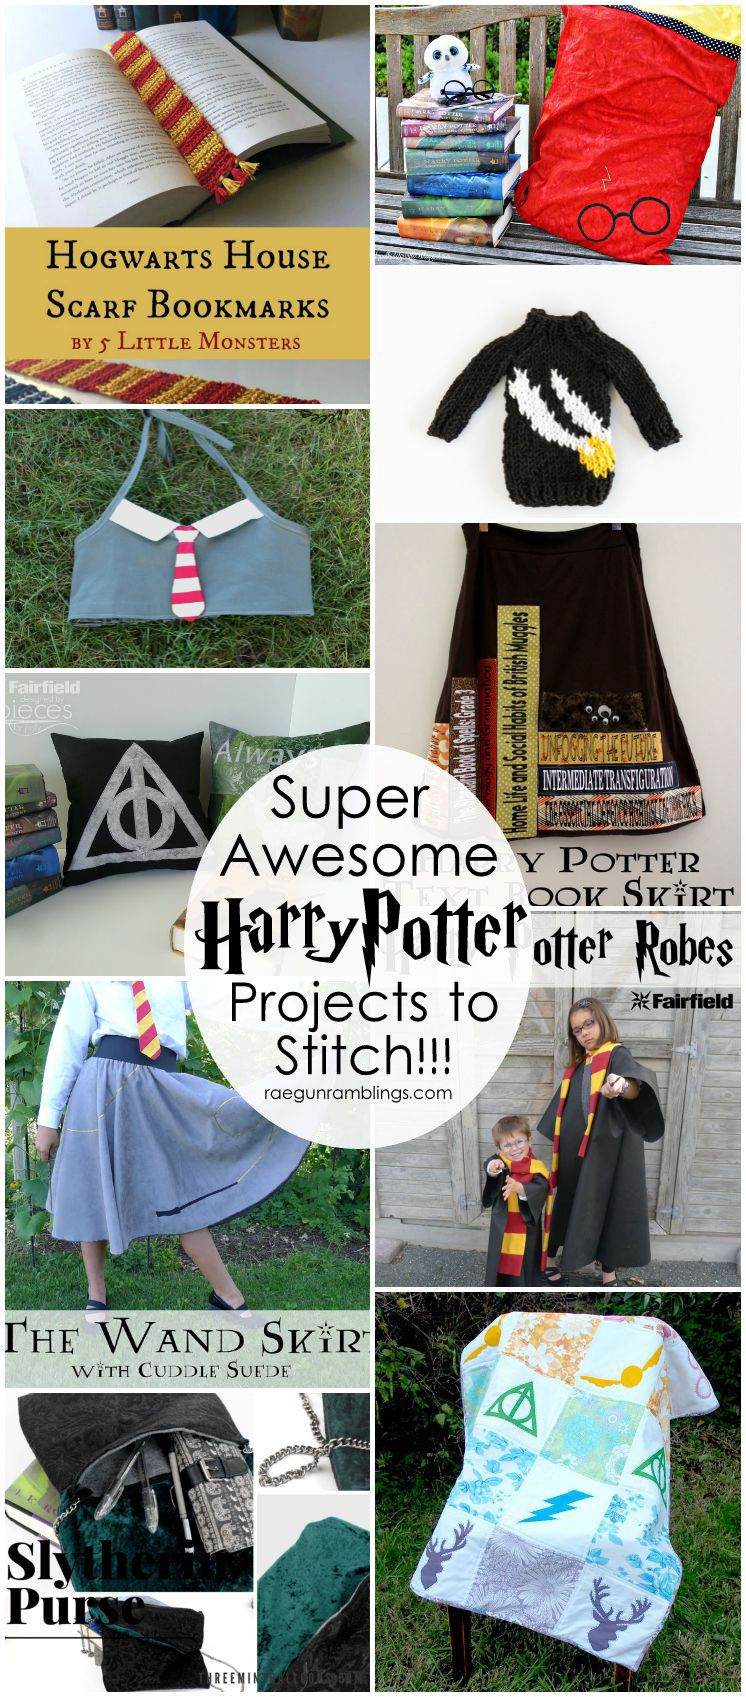 Over 50 Awesome Harry Potter Projects | Kleidung nähen, Harry potter ...